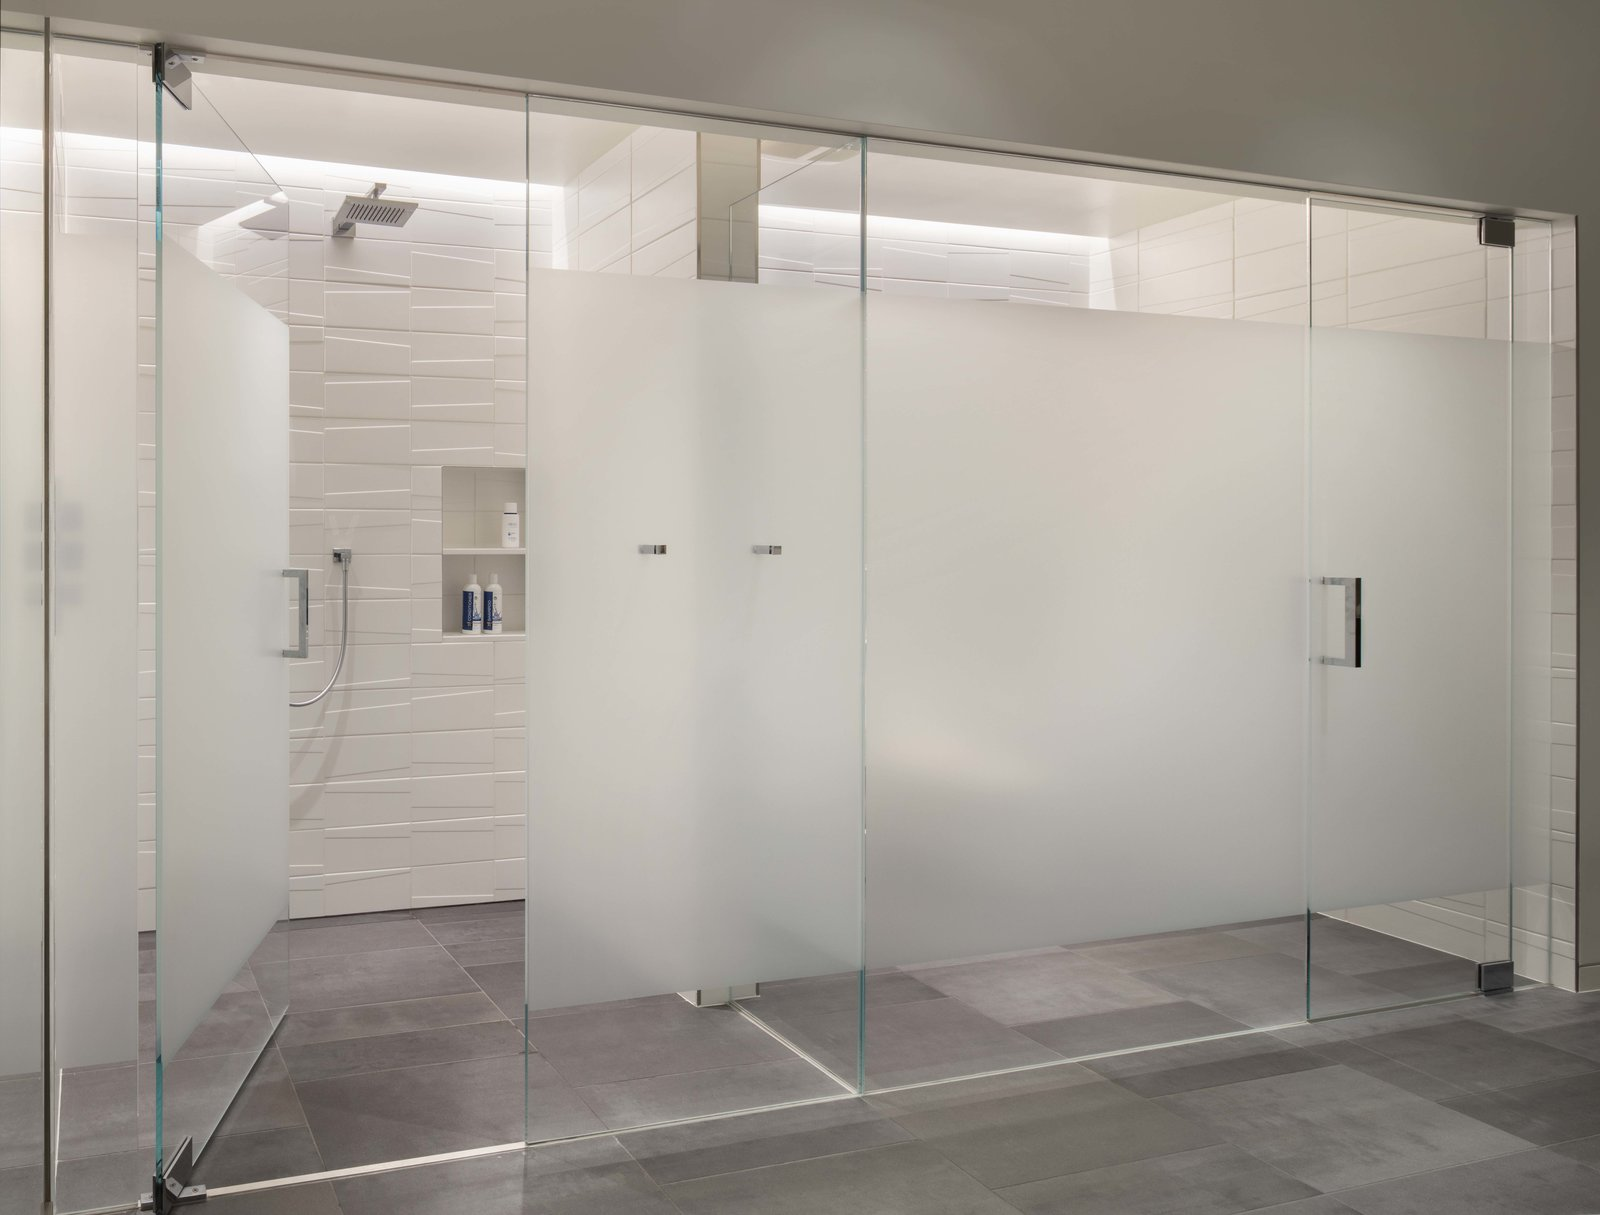 Bath Room, Porcelain Tile Floor, Recessed Lighting, Enclosed Shower, Ceramic Tile Wall, Ceiling Lighting, Accent Lighting, and One Piece Toilet Master Bath: Shower and Toilet rooms  the Duncan Residence